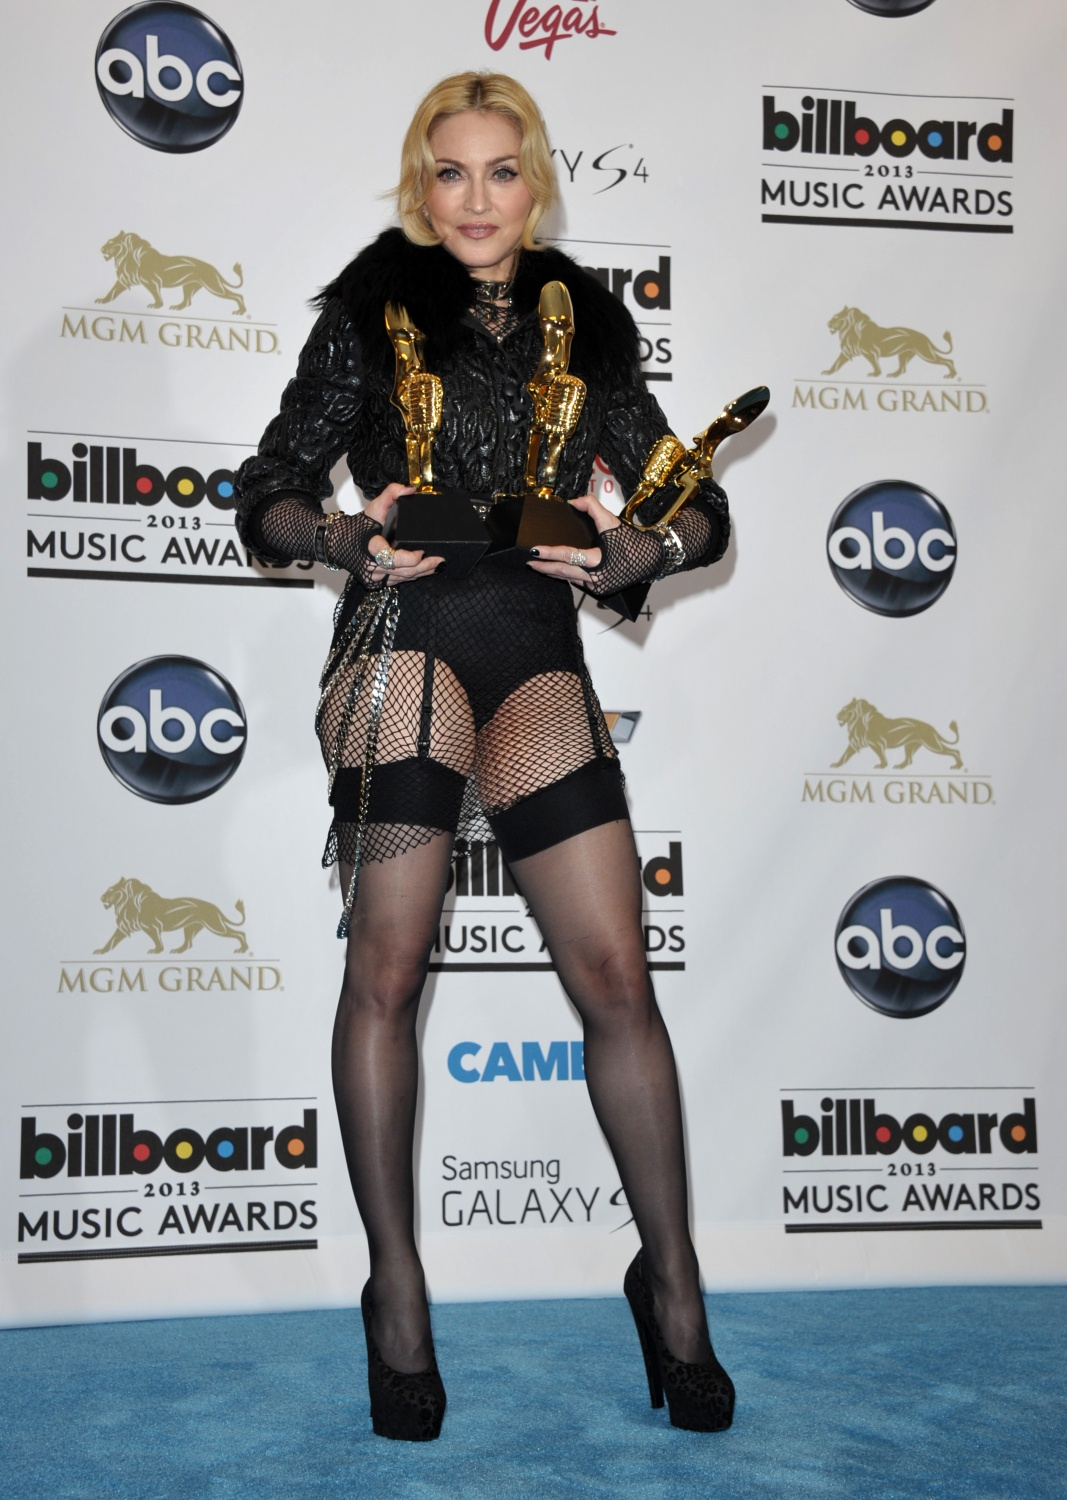 20130520-pictures-madonna-2013-billboard